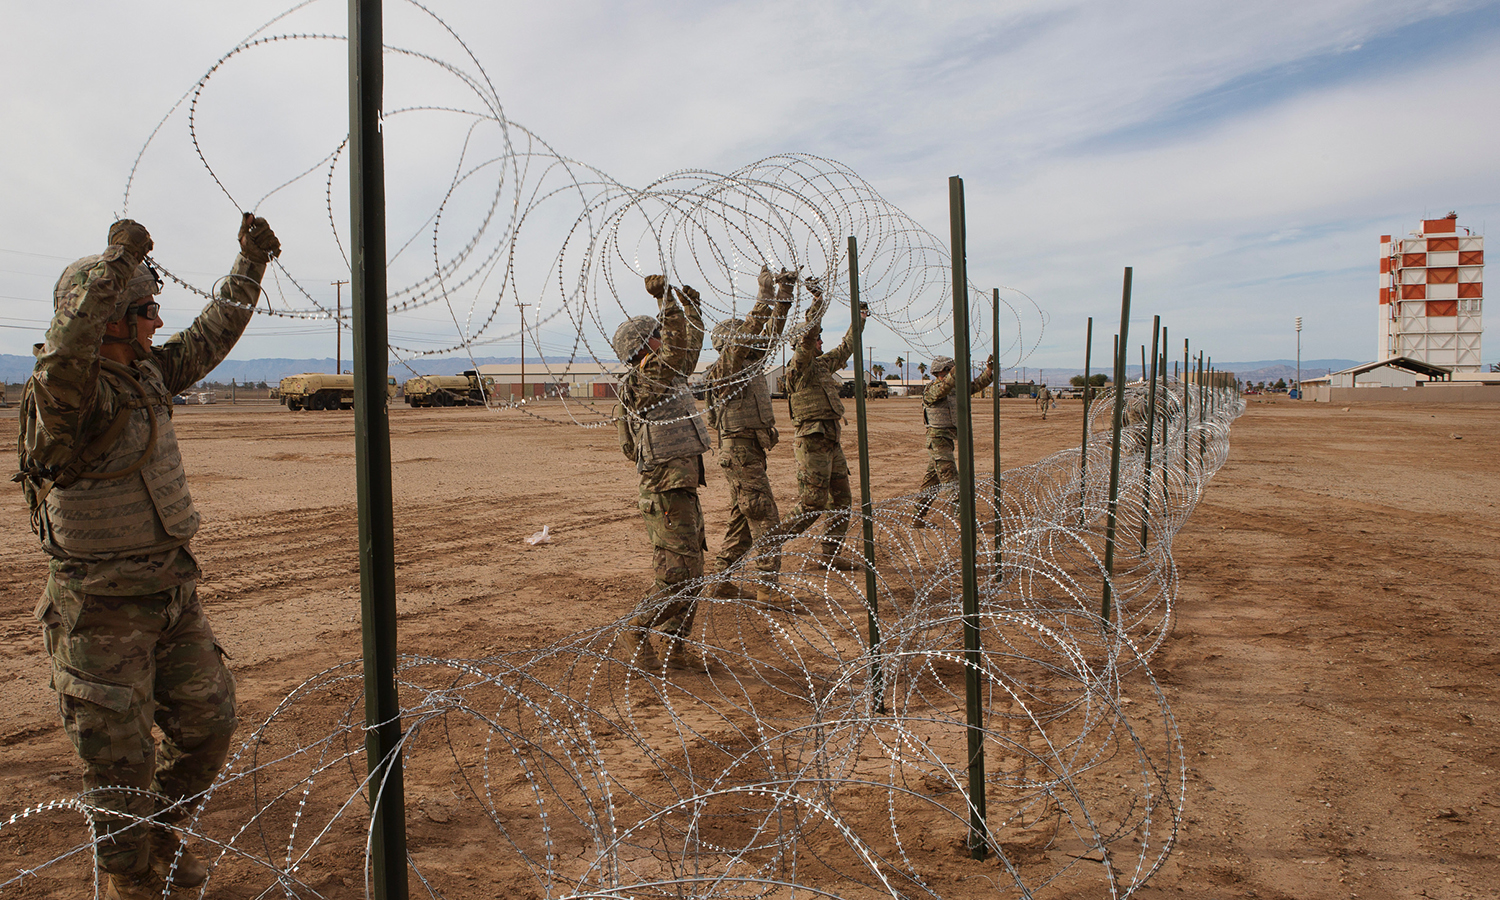 U.S Soldiers with 541st Engineer Company, Special Purpose Marine Air-Ground Task Force 7, position concertina wire on a practice barricade at Naval Air Facility El Centro in California, Dec. 4, 2018. U.S. Northern Command is providing military support to the Department of Homeland Security and U.S. Customs and Border Protection to secure the Southern border of the United States. (photo credit: U.S. Marine Corps photo by Sgt. Asia J. Sorenson).